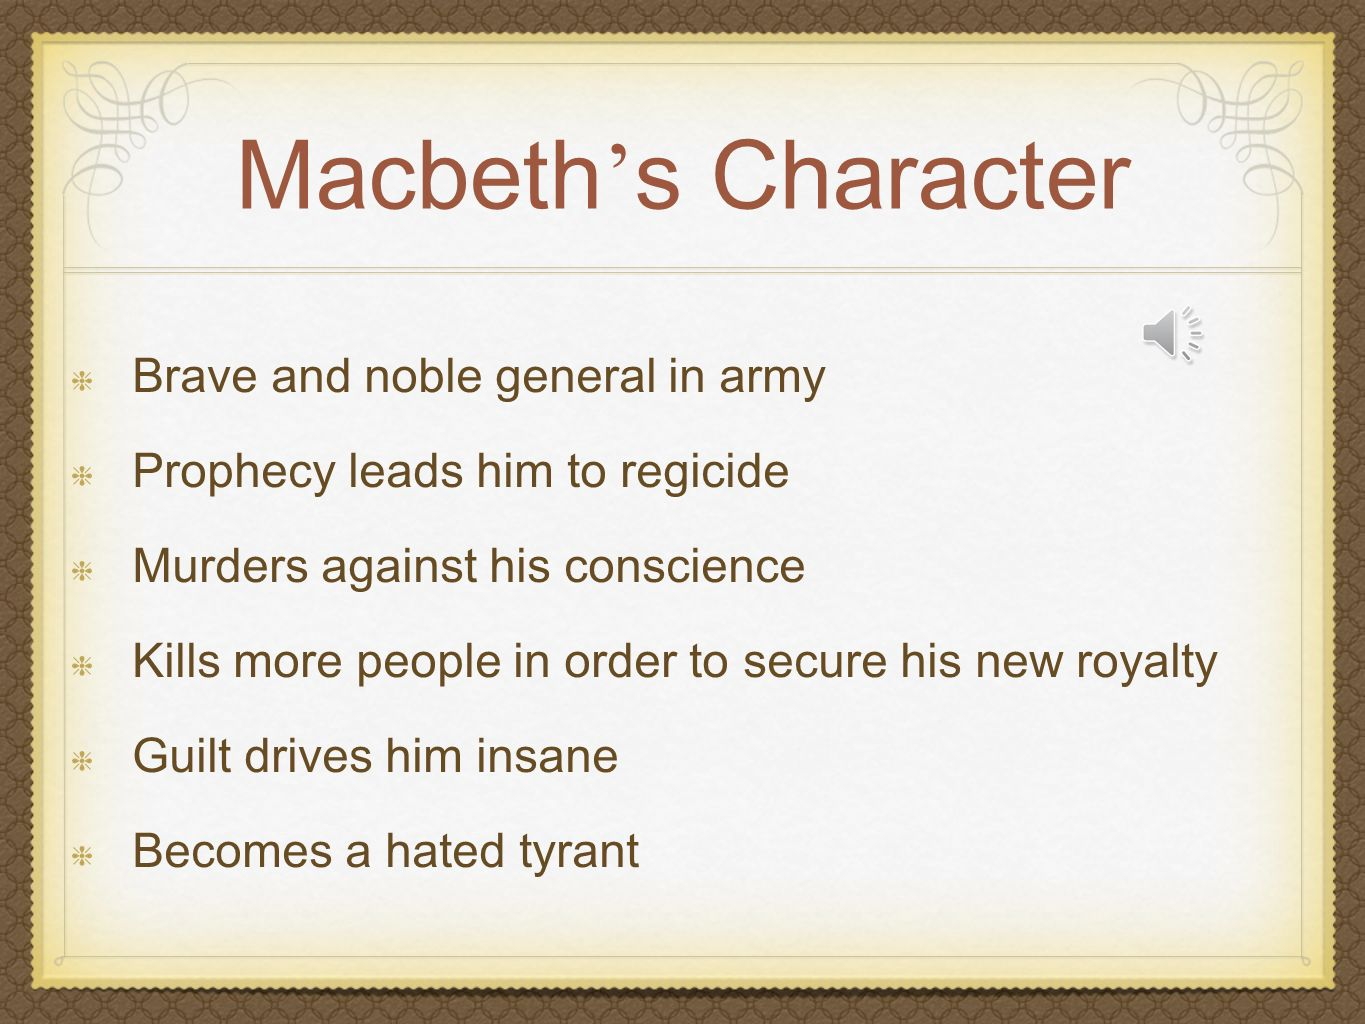 Macbeth - Evil Tyrant or Man of Conscience? Case Study